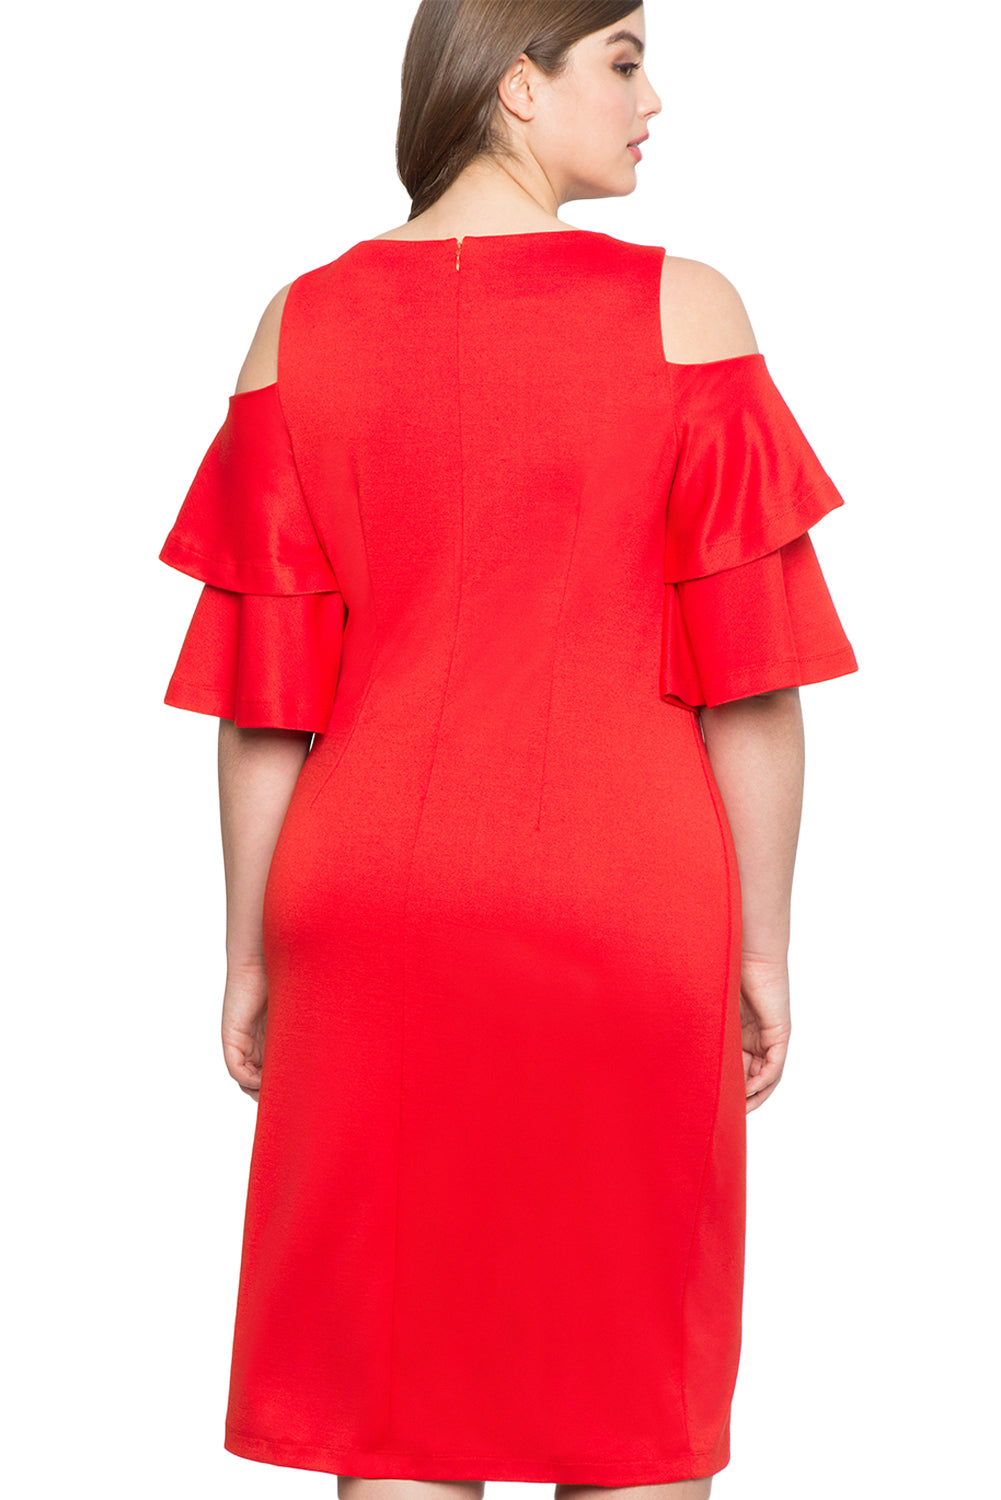 aae46621df Robe Femme Ronde Chic Rouge Volant Manche Du Froid Epaule MB610319-3 –  ModeBuy.com